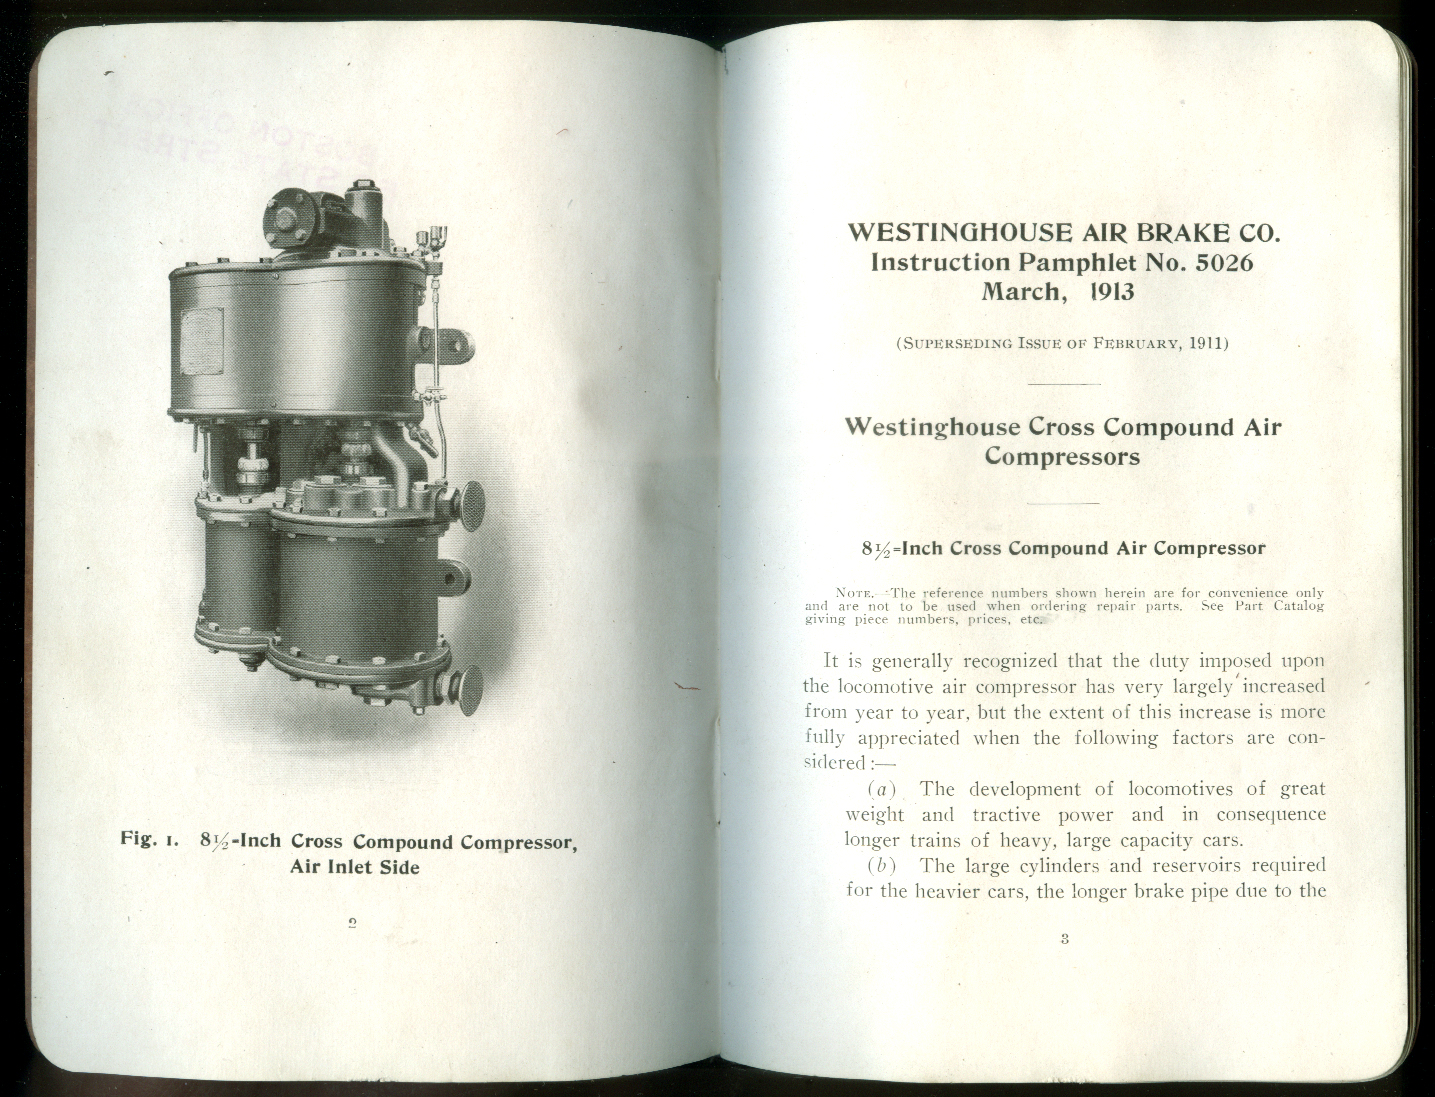 Westinghouse Cross Compound Air Compressors Instruction Pamphlet 1913